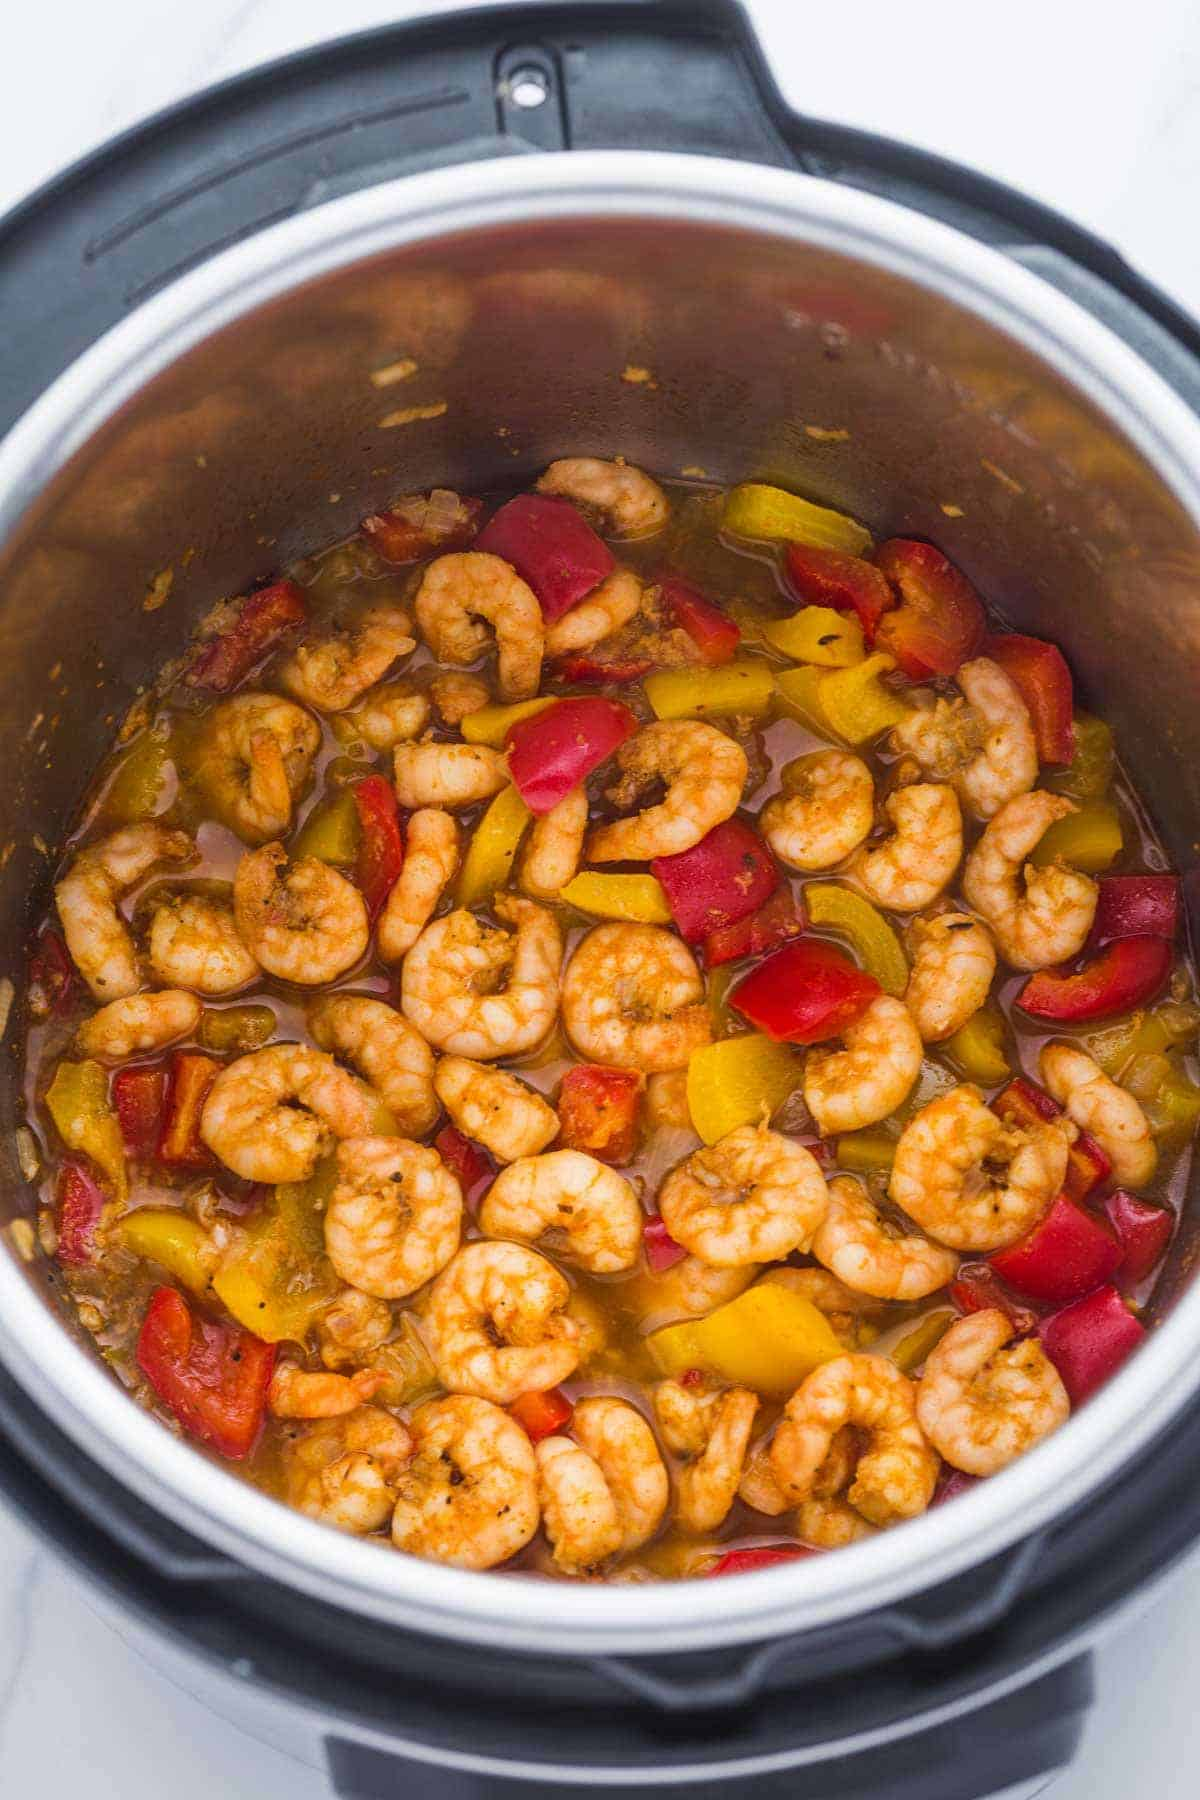 Cooked Instant Pot Spicy Cajun Pepper Shrimp in the pressure cooker